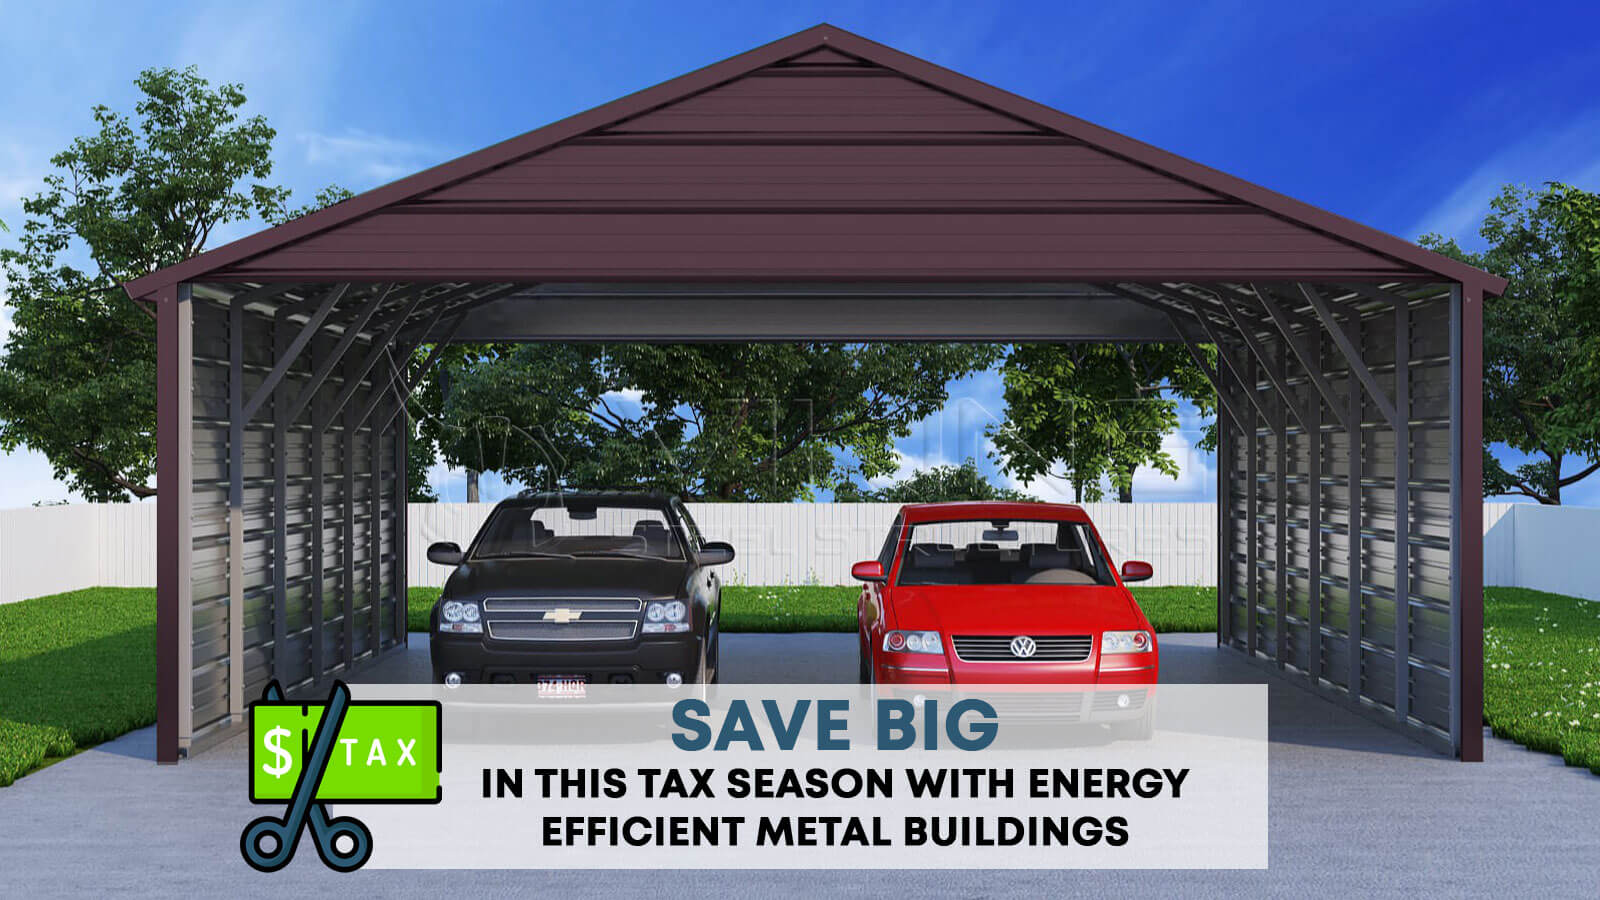 SAVE BIG in This Tax Season with Energy Efficient Metal Buildings